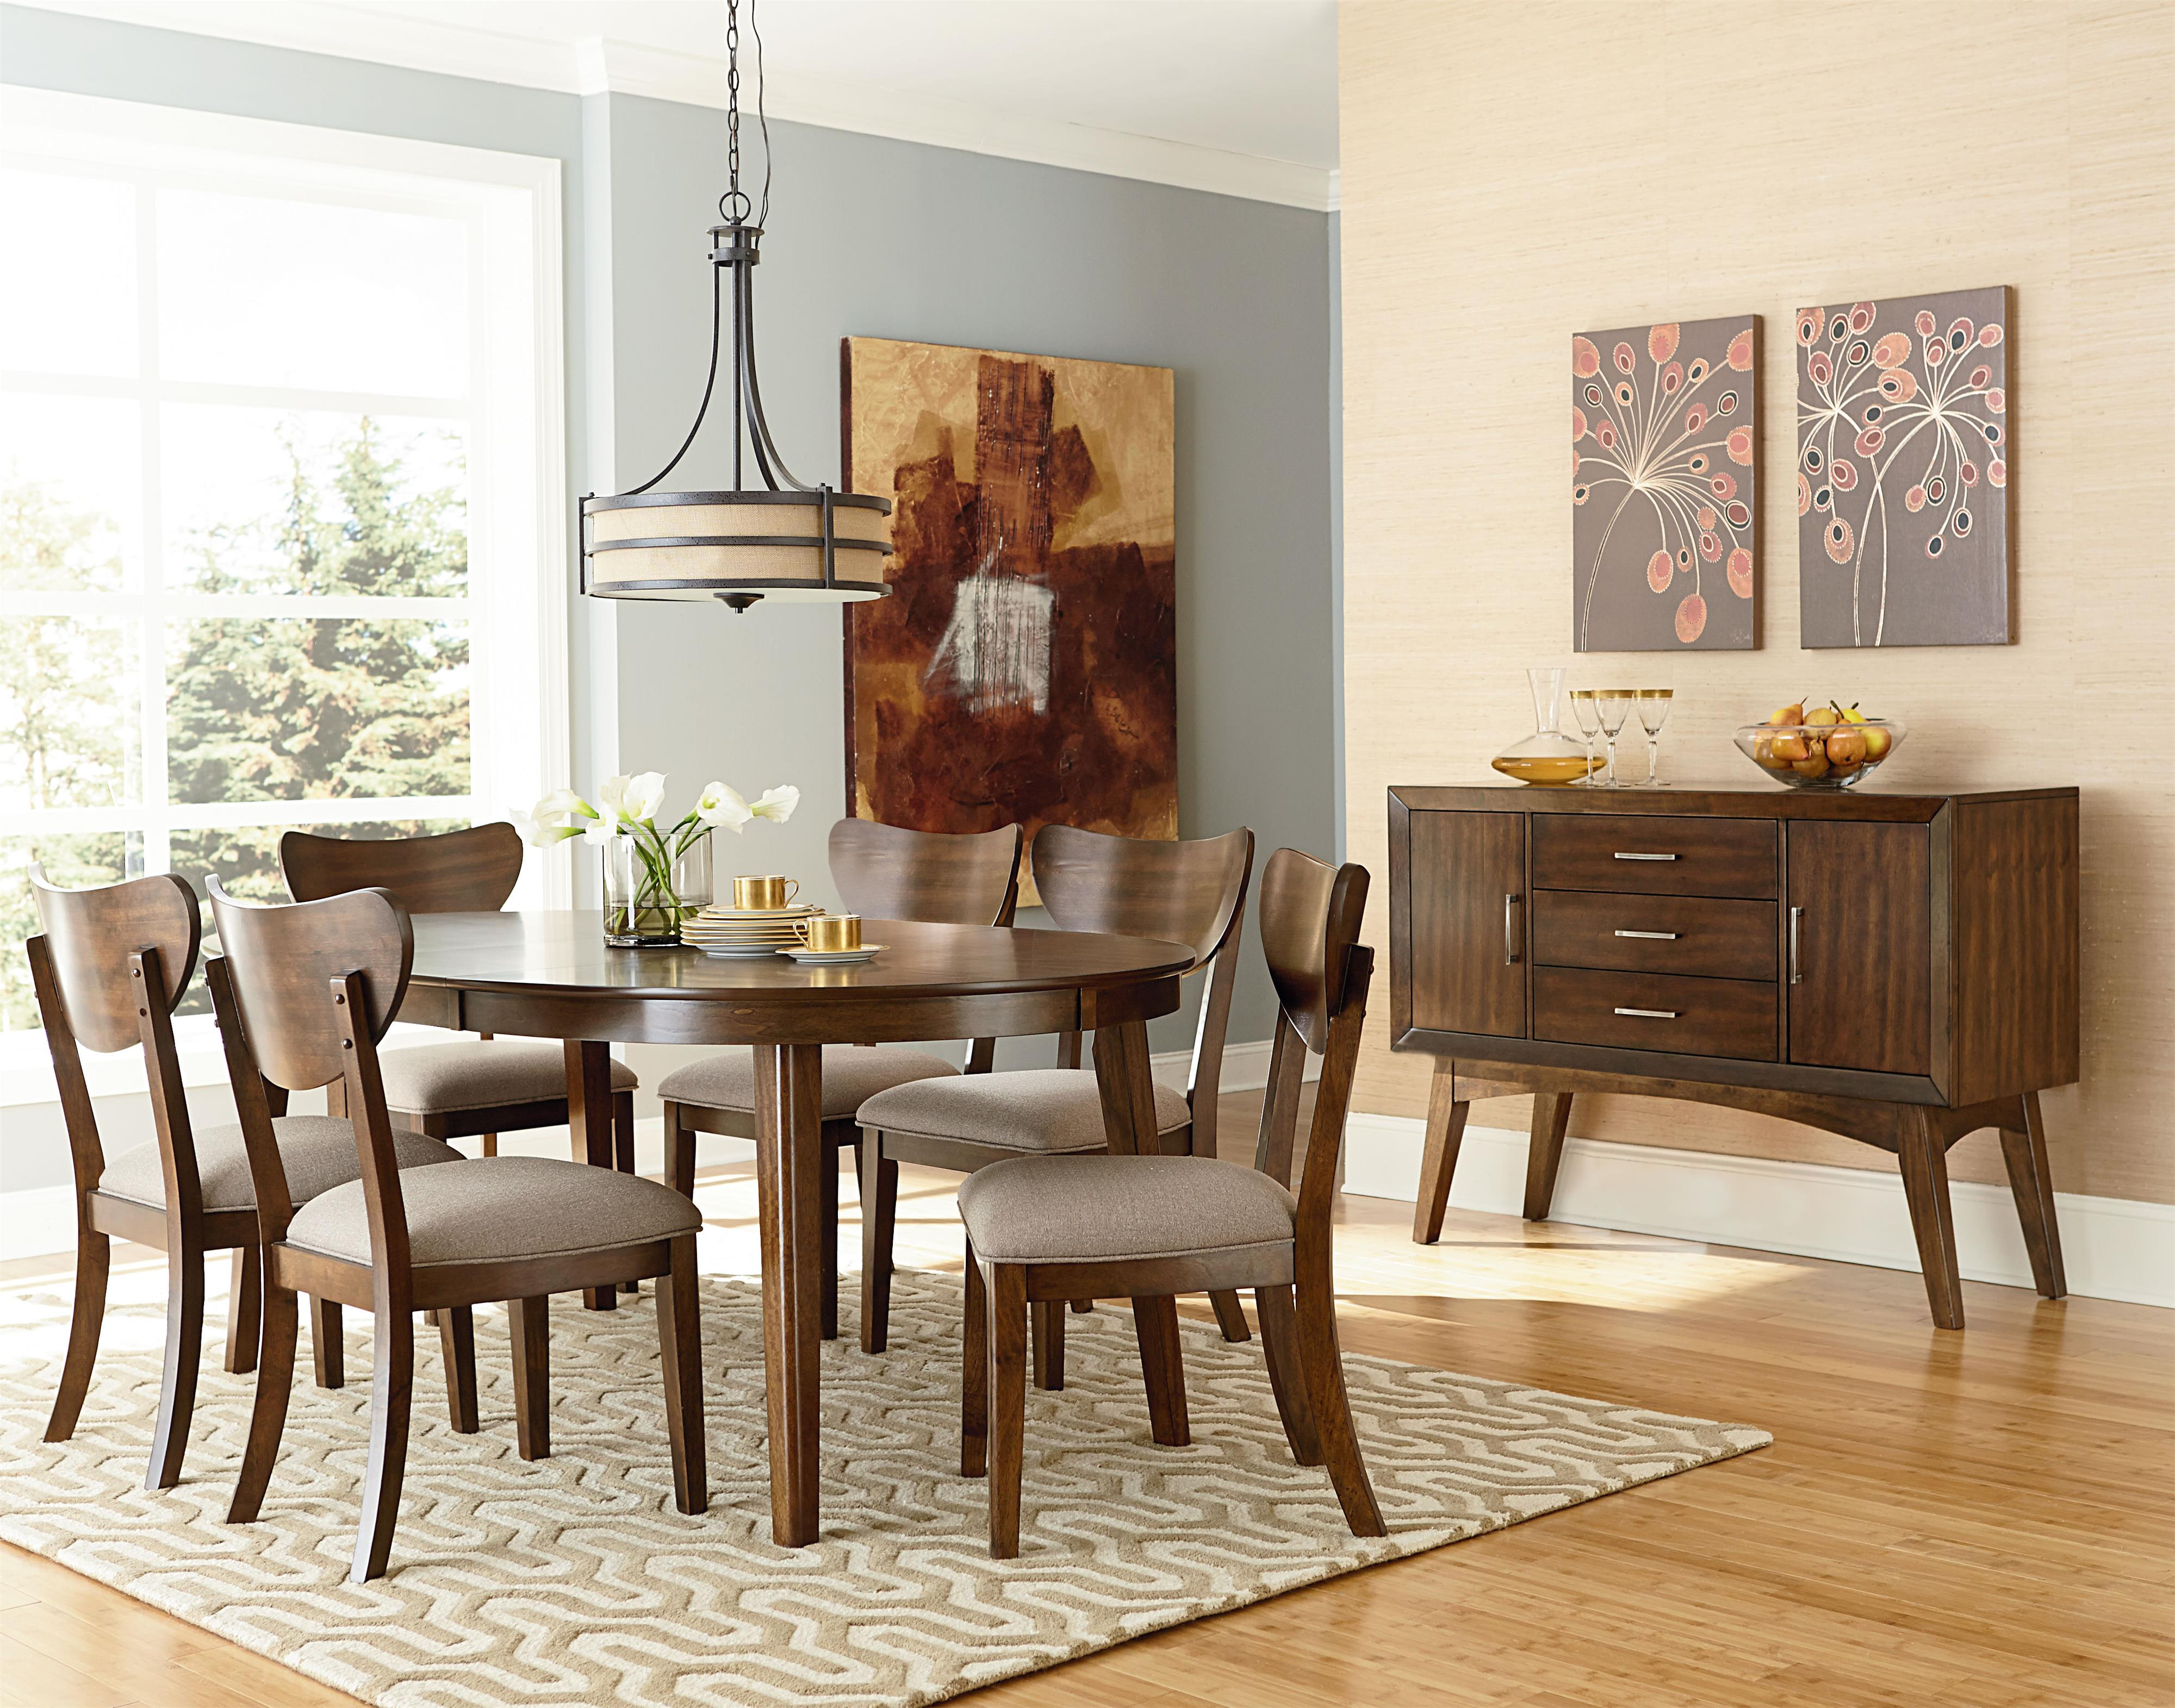 Standard Furniture Roxbury Casual Dining Room Group - Item Number: 16200 Dining Room Group 1